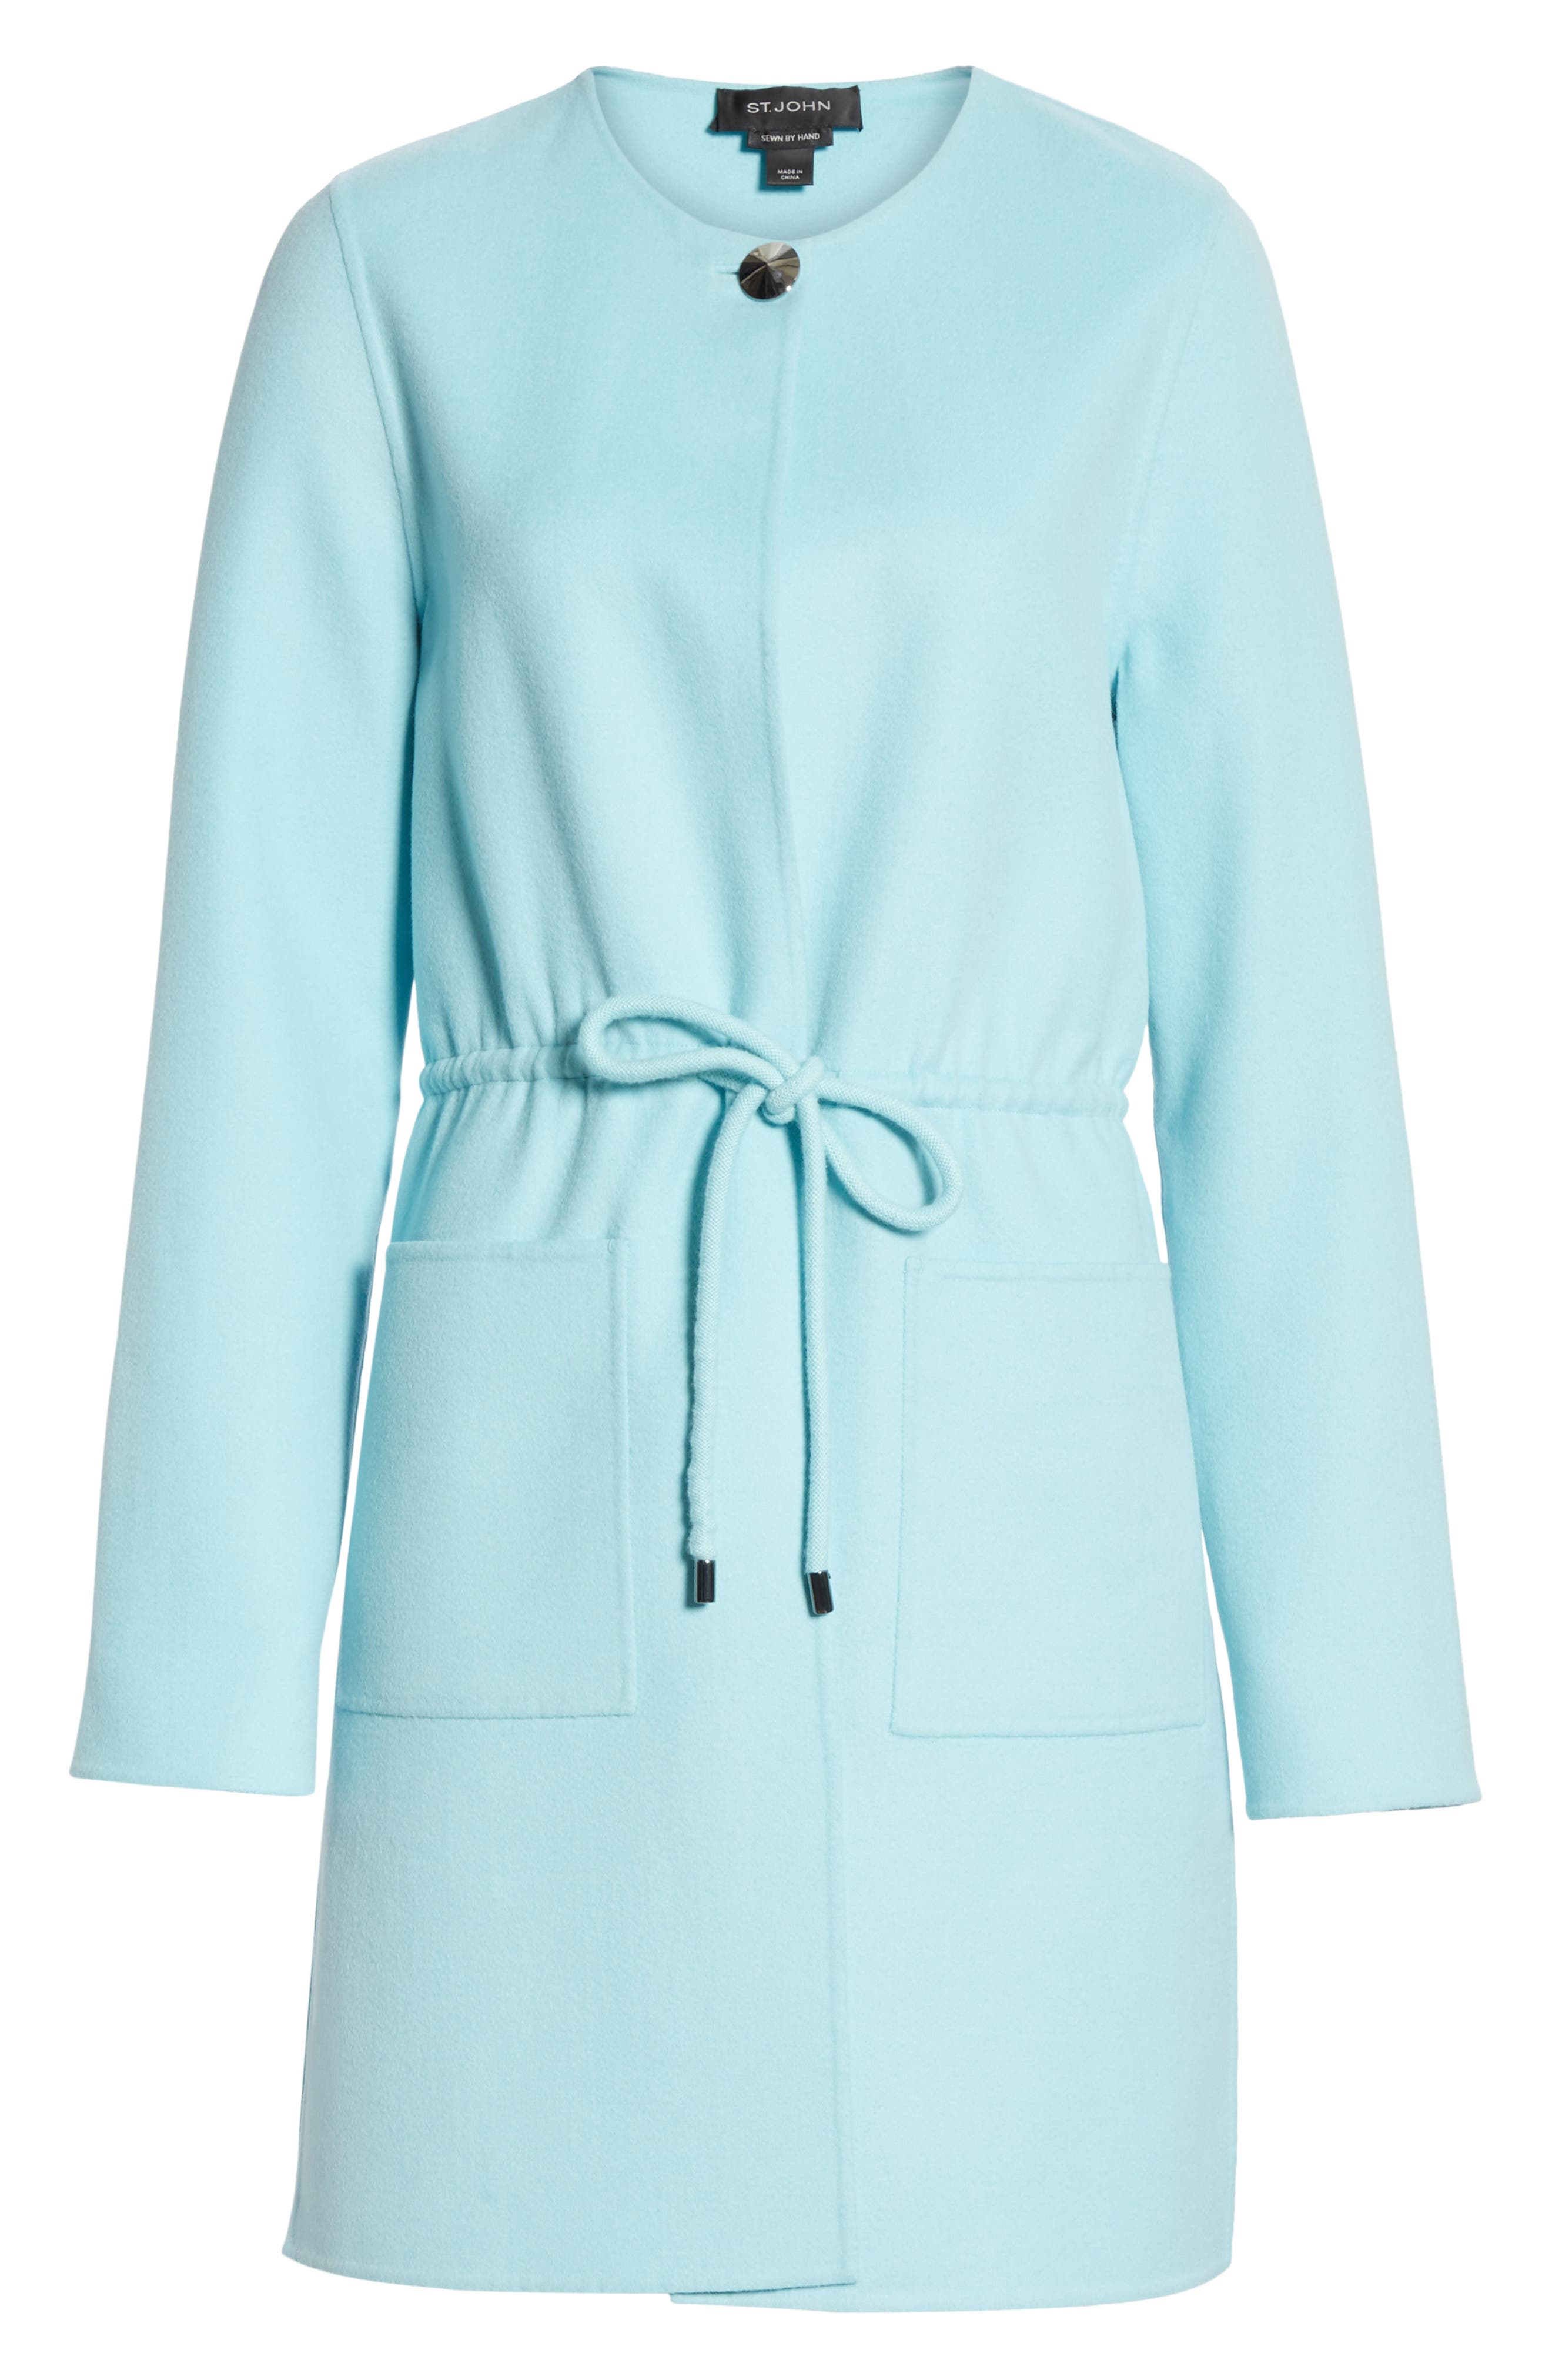 ST. JOHN COLLECTION,                             Double Face Wool & Cashmere Jacket,                             Alternate thumbnail 6, color,                             AQUAMARINE